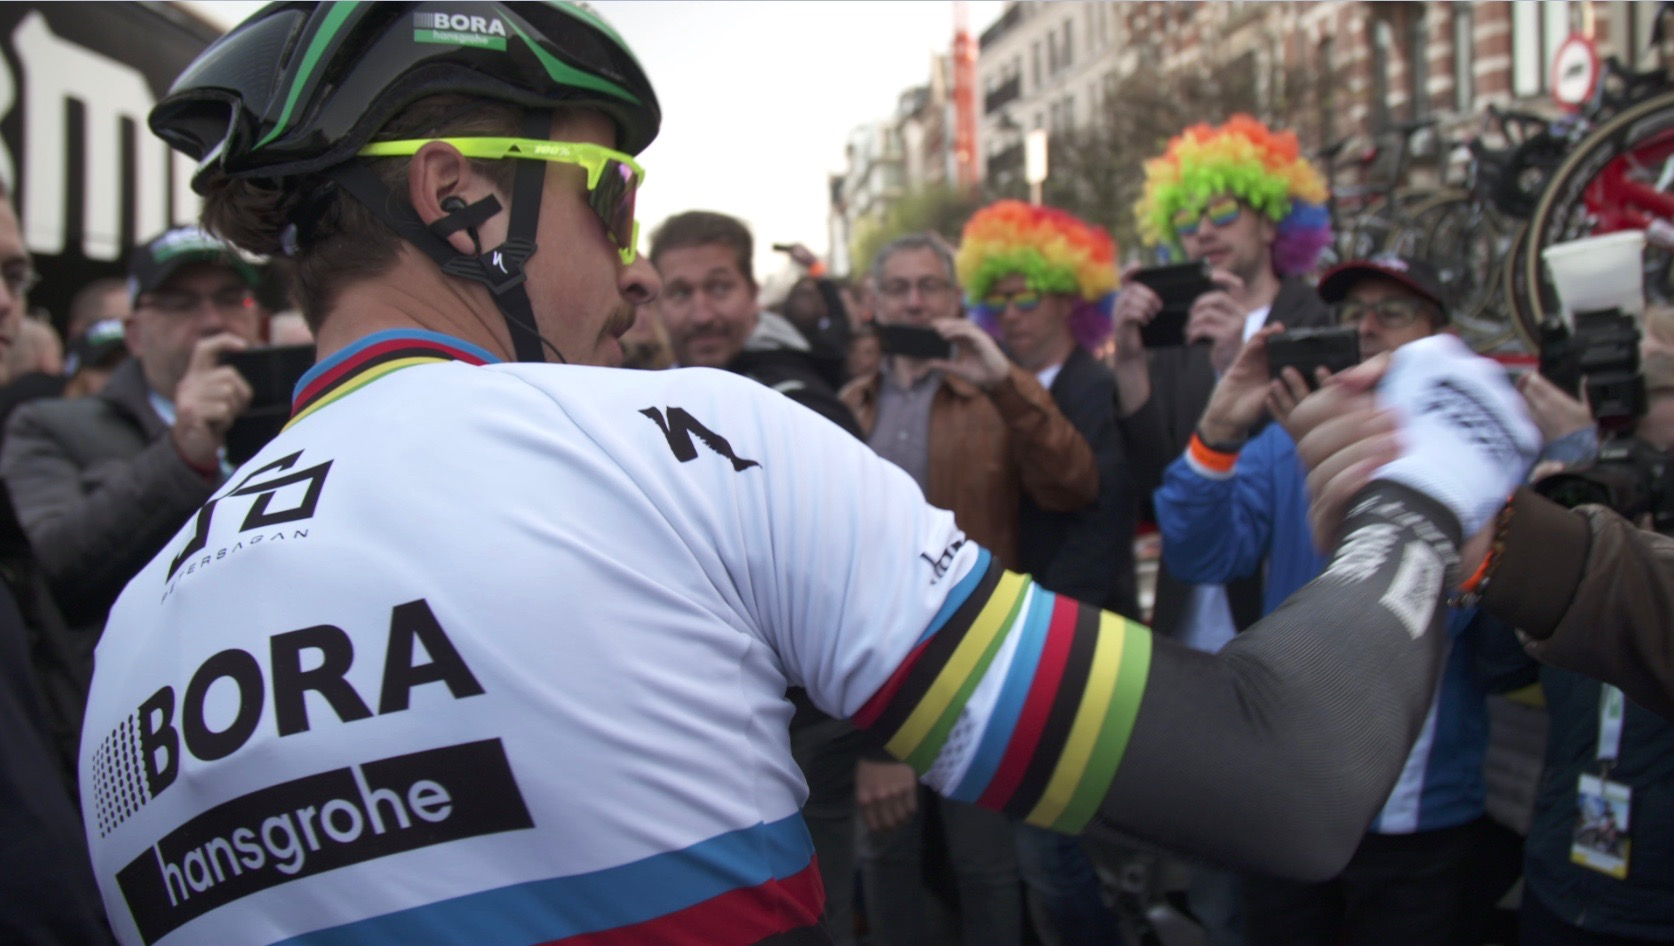 World Champion Peter Sagan shakes hands with fans at the start of the Tour of Flanders